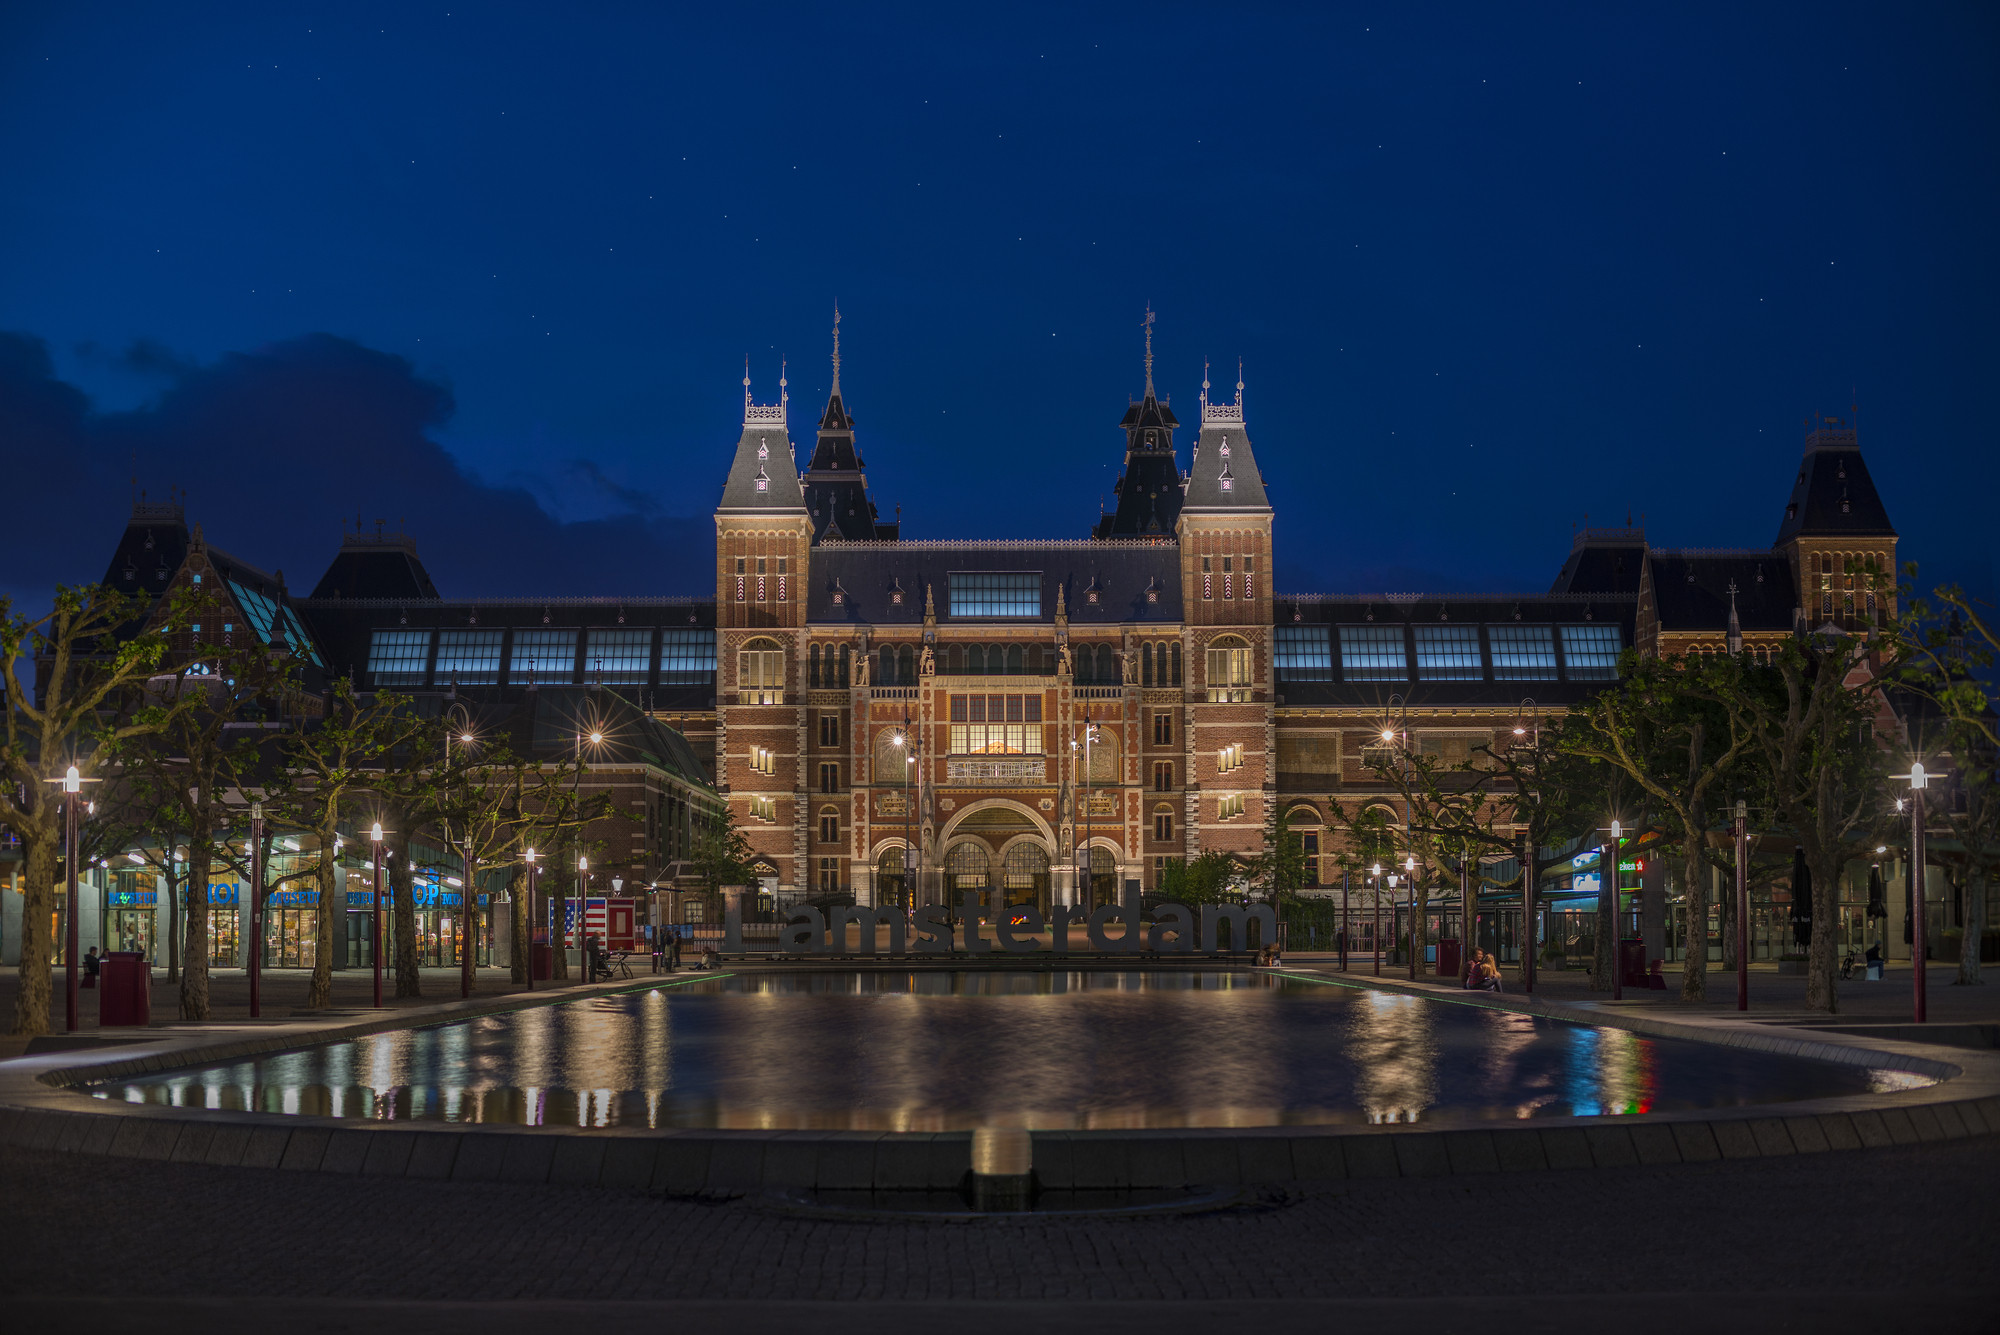 544d4c8ce58eceb567000340 cruz y ortiz completes renovation of the rijksmuseum s philips wing rijksmuseum   2014   john lewis marshall   02  jpeg  - Destinos Baratos Nochevieja 2018 Parte 1